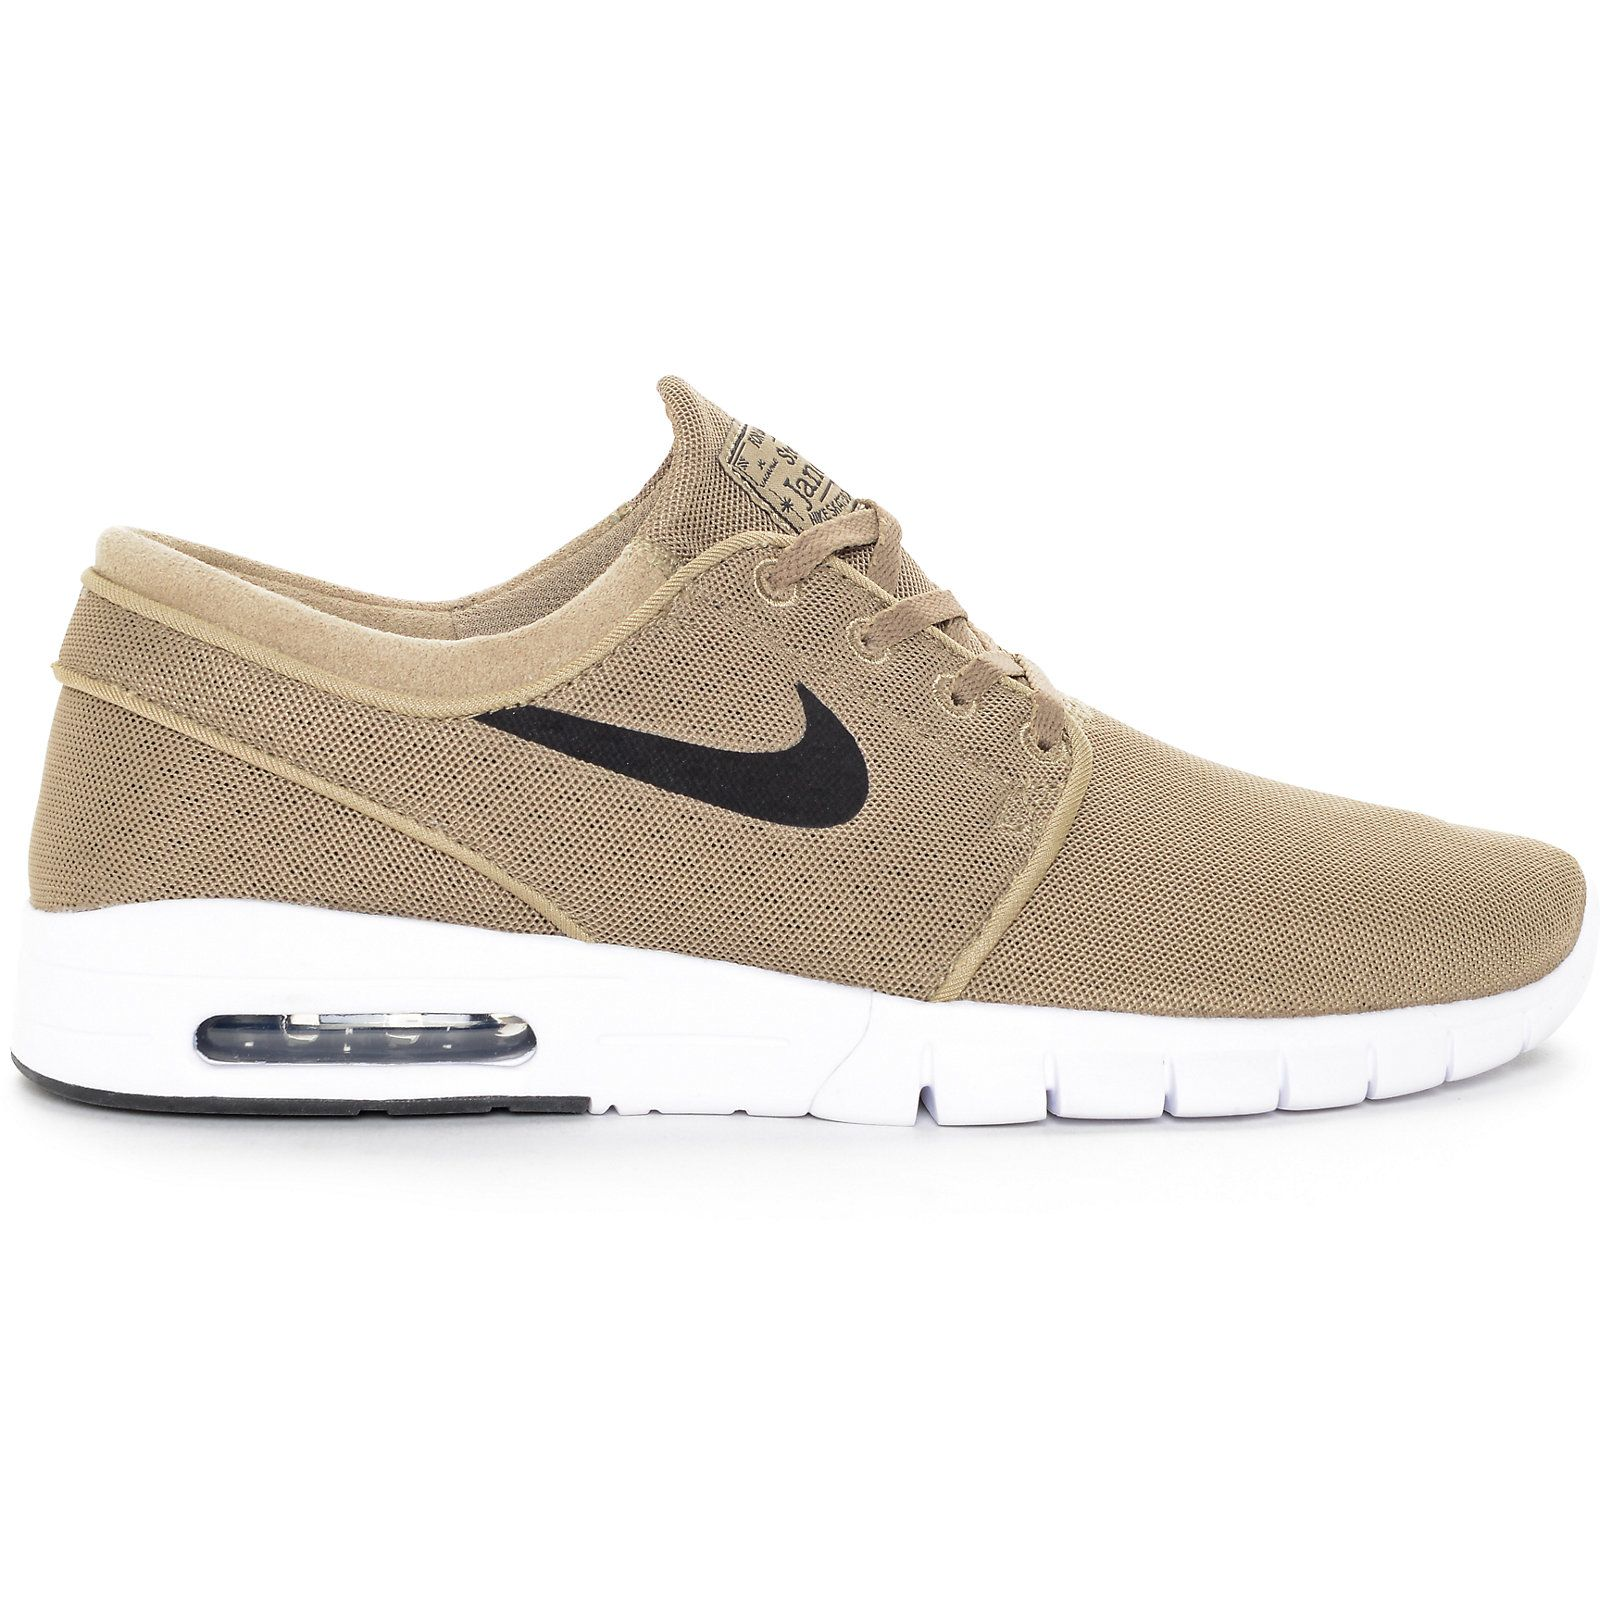 ruido fácilmente necesario  If you're looking for the perfect package of outrageous comfort and  functional styling then you need the Nike SB Stefan Janoski Ma… | Nike sb  janoski, Nike sb, Nike